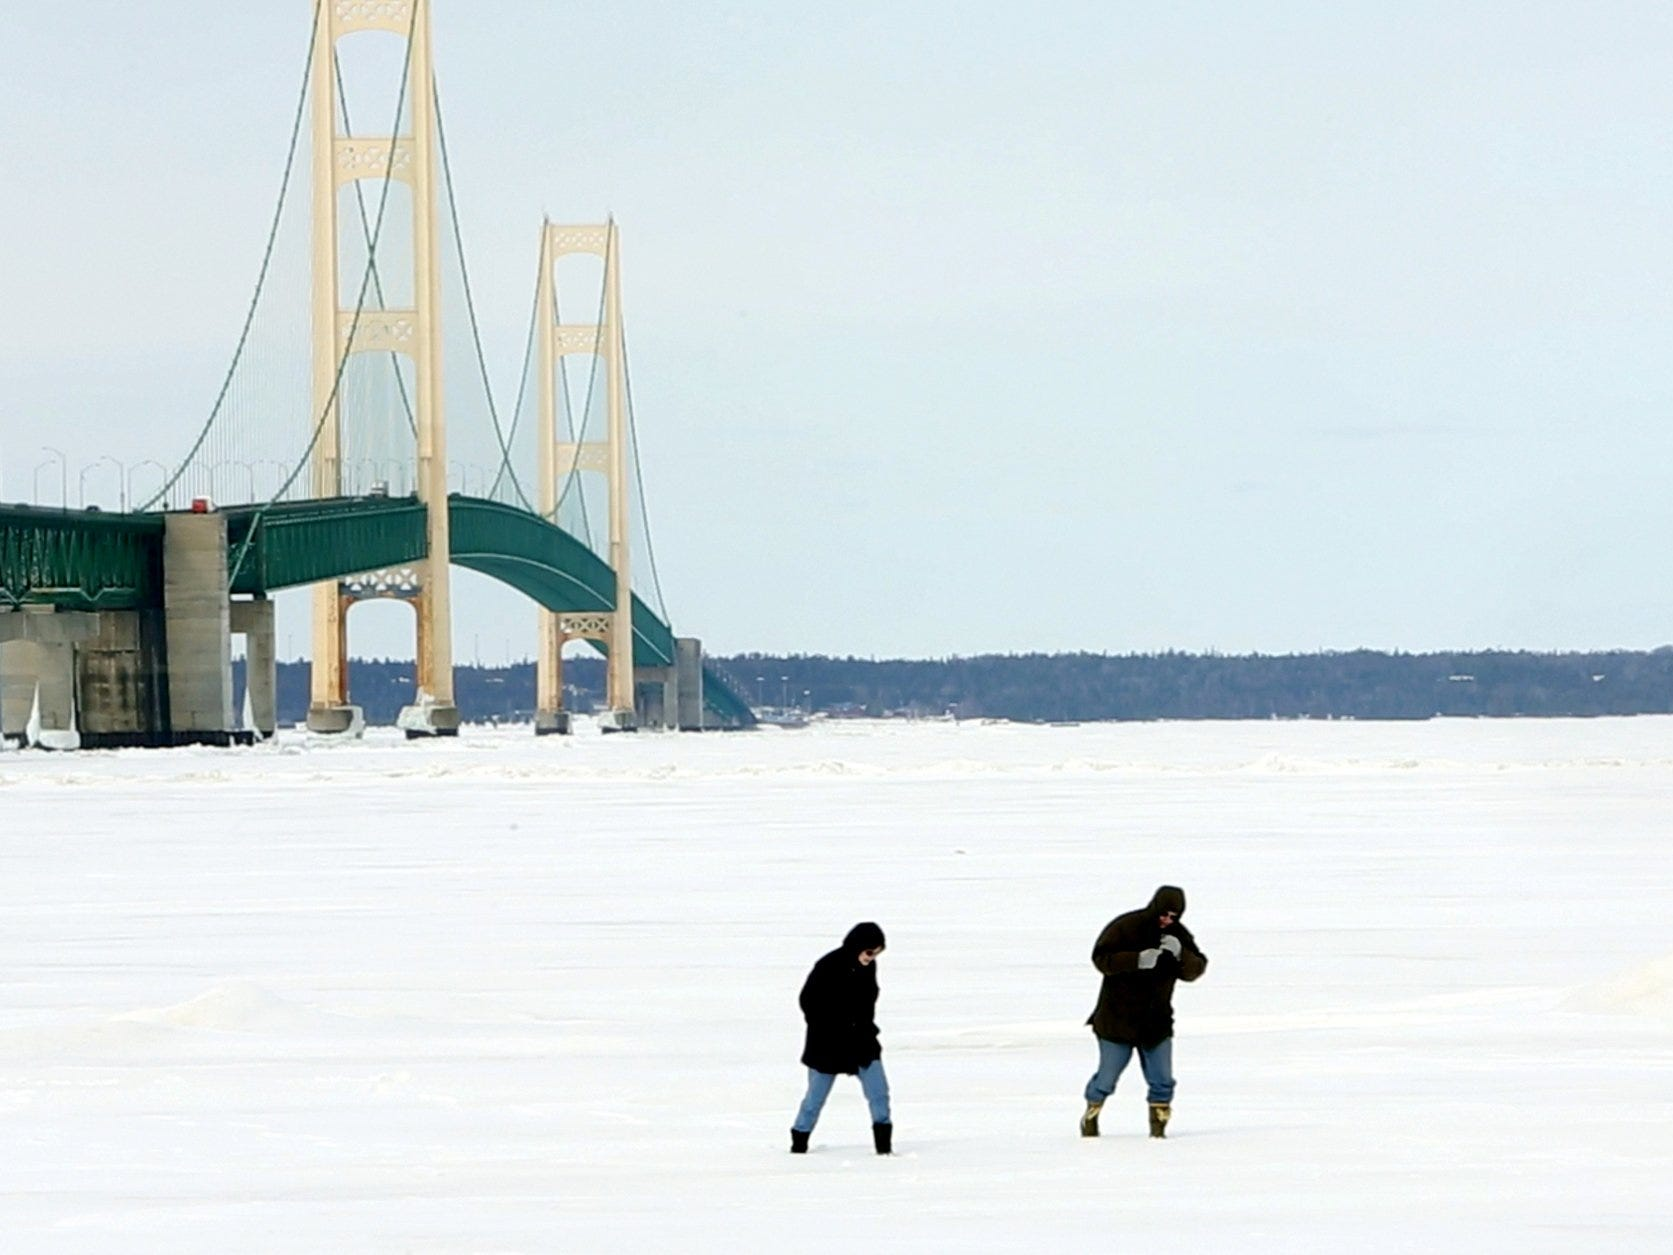 People walk on the frozen waters of the Straits of Mackinac near the Mackinac Bridge as seen from Mackinaw City on Friday, March 21, 2014.